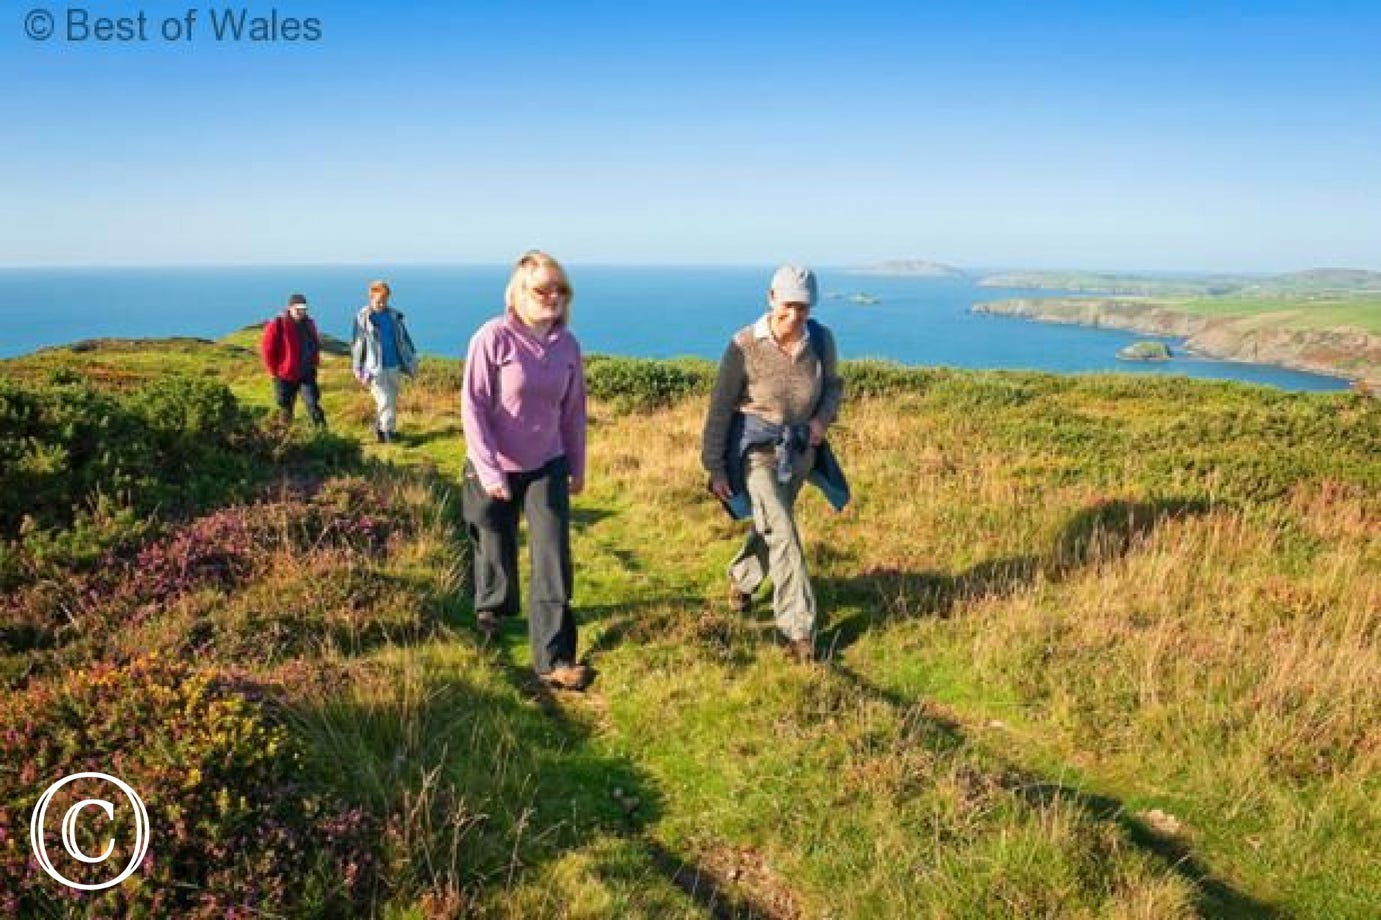 Take in the fresh air and stunning views along the Llyn Coastal Path